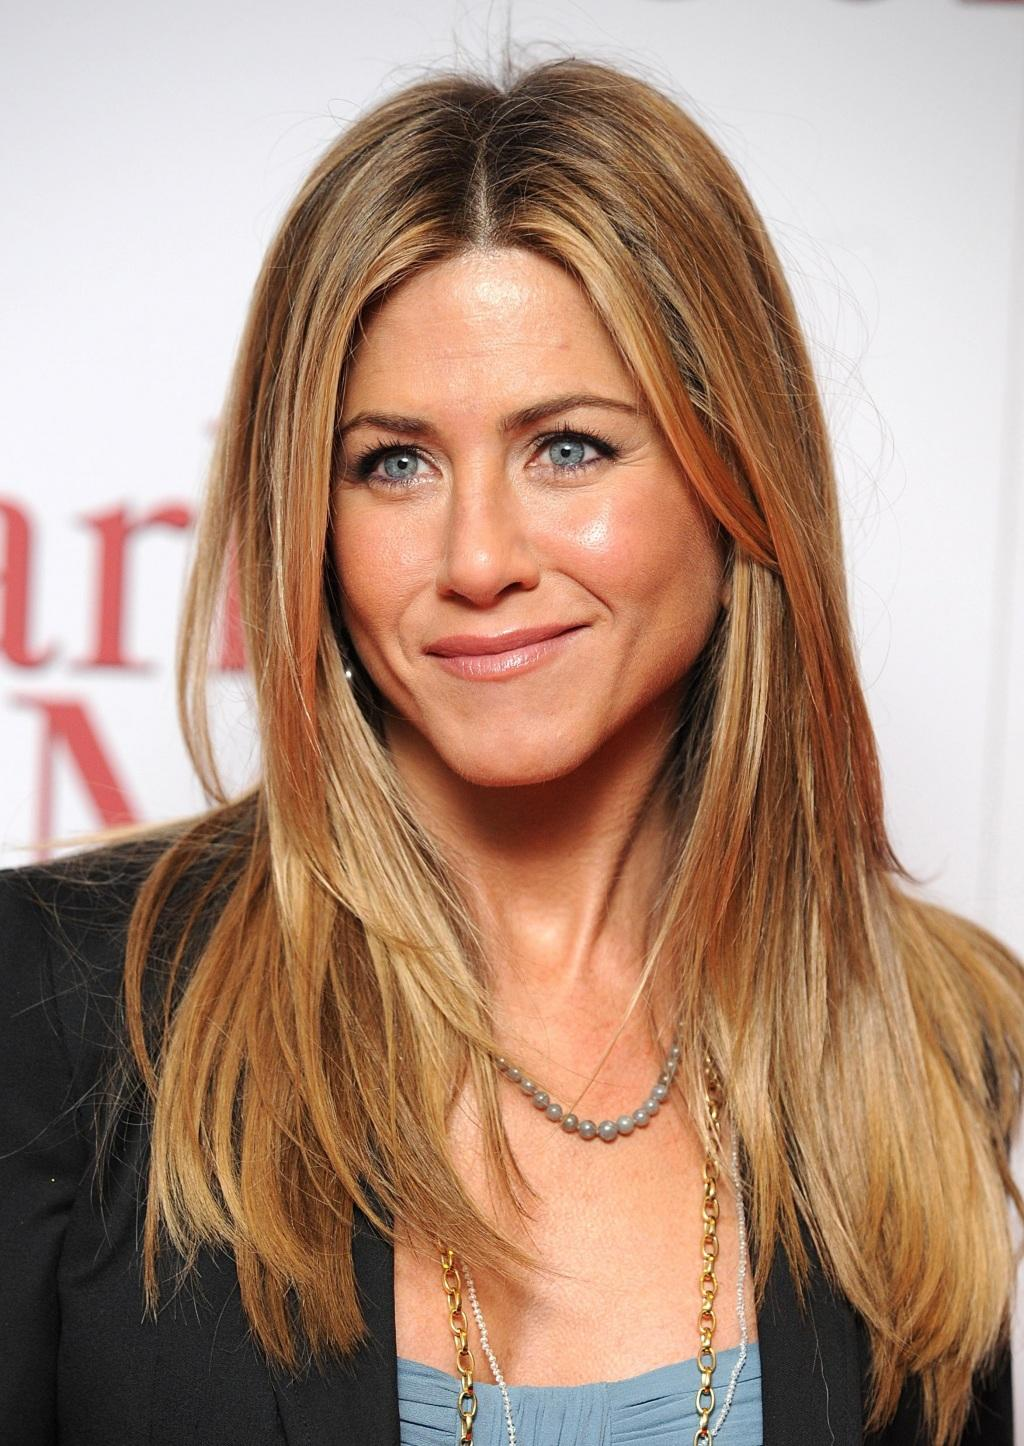 Jennifer Aniston Net Worth And Complete Bio 2